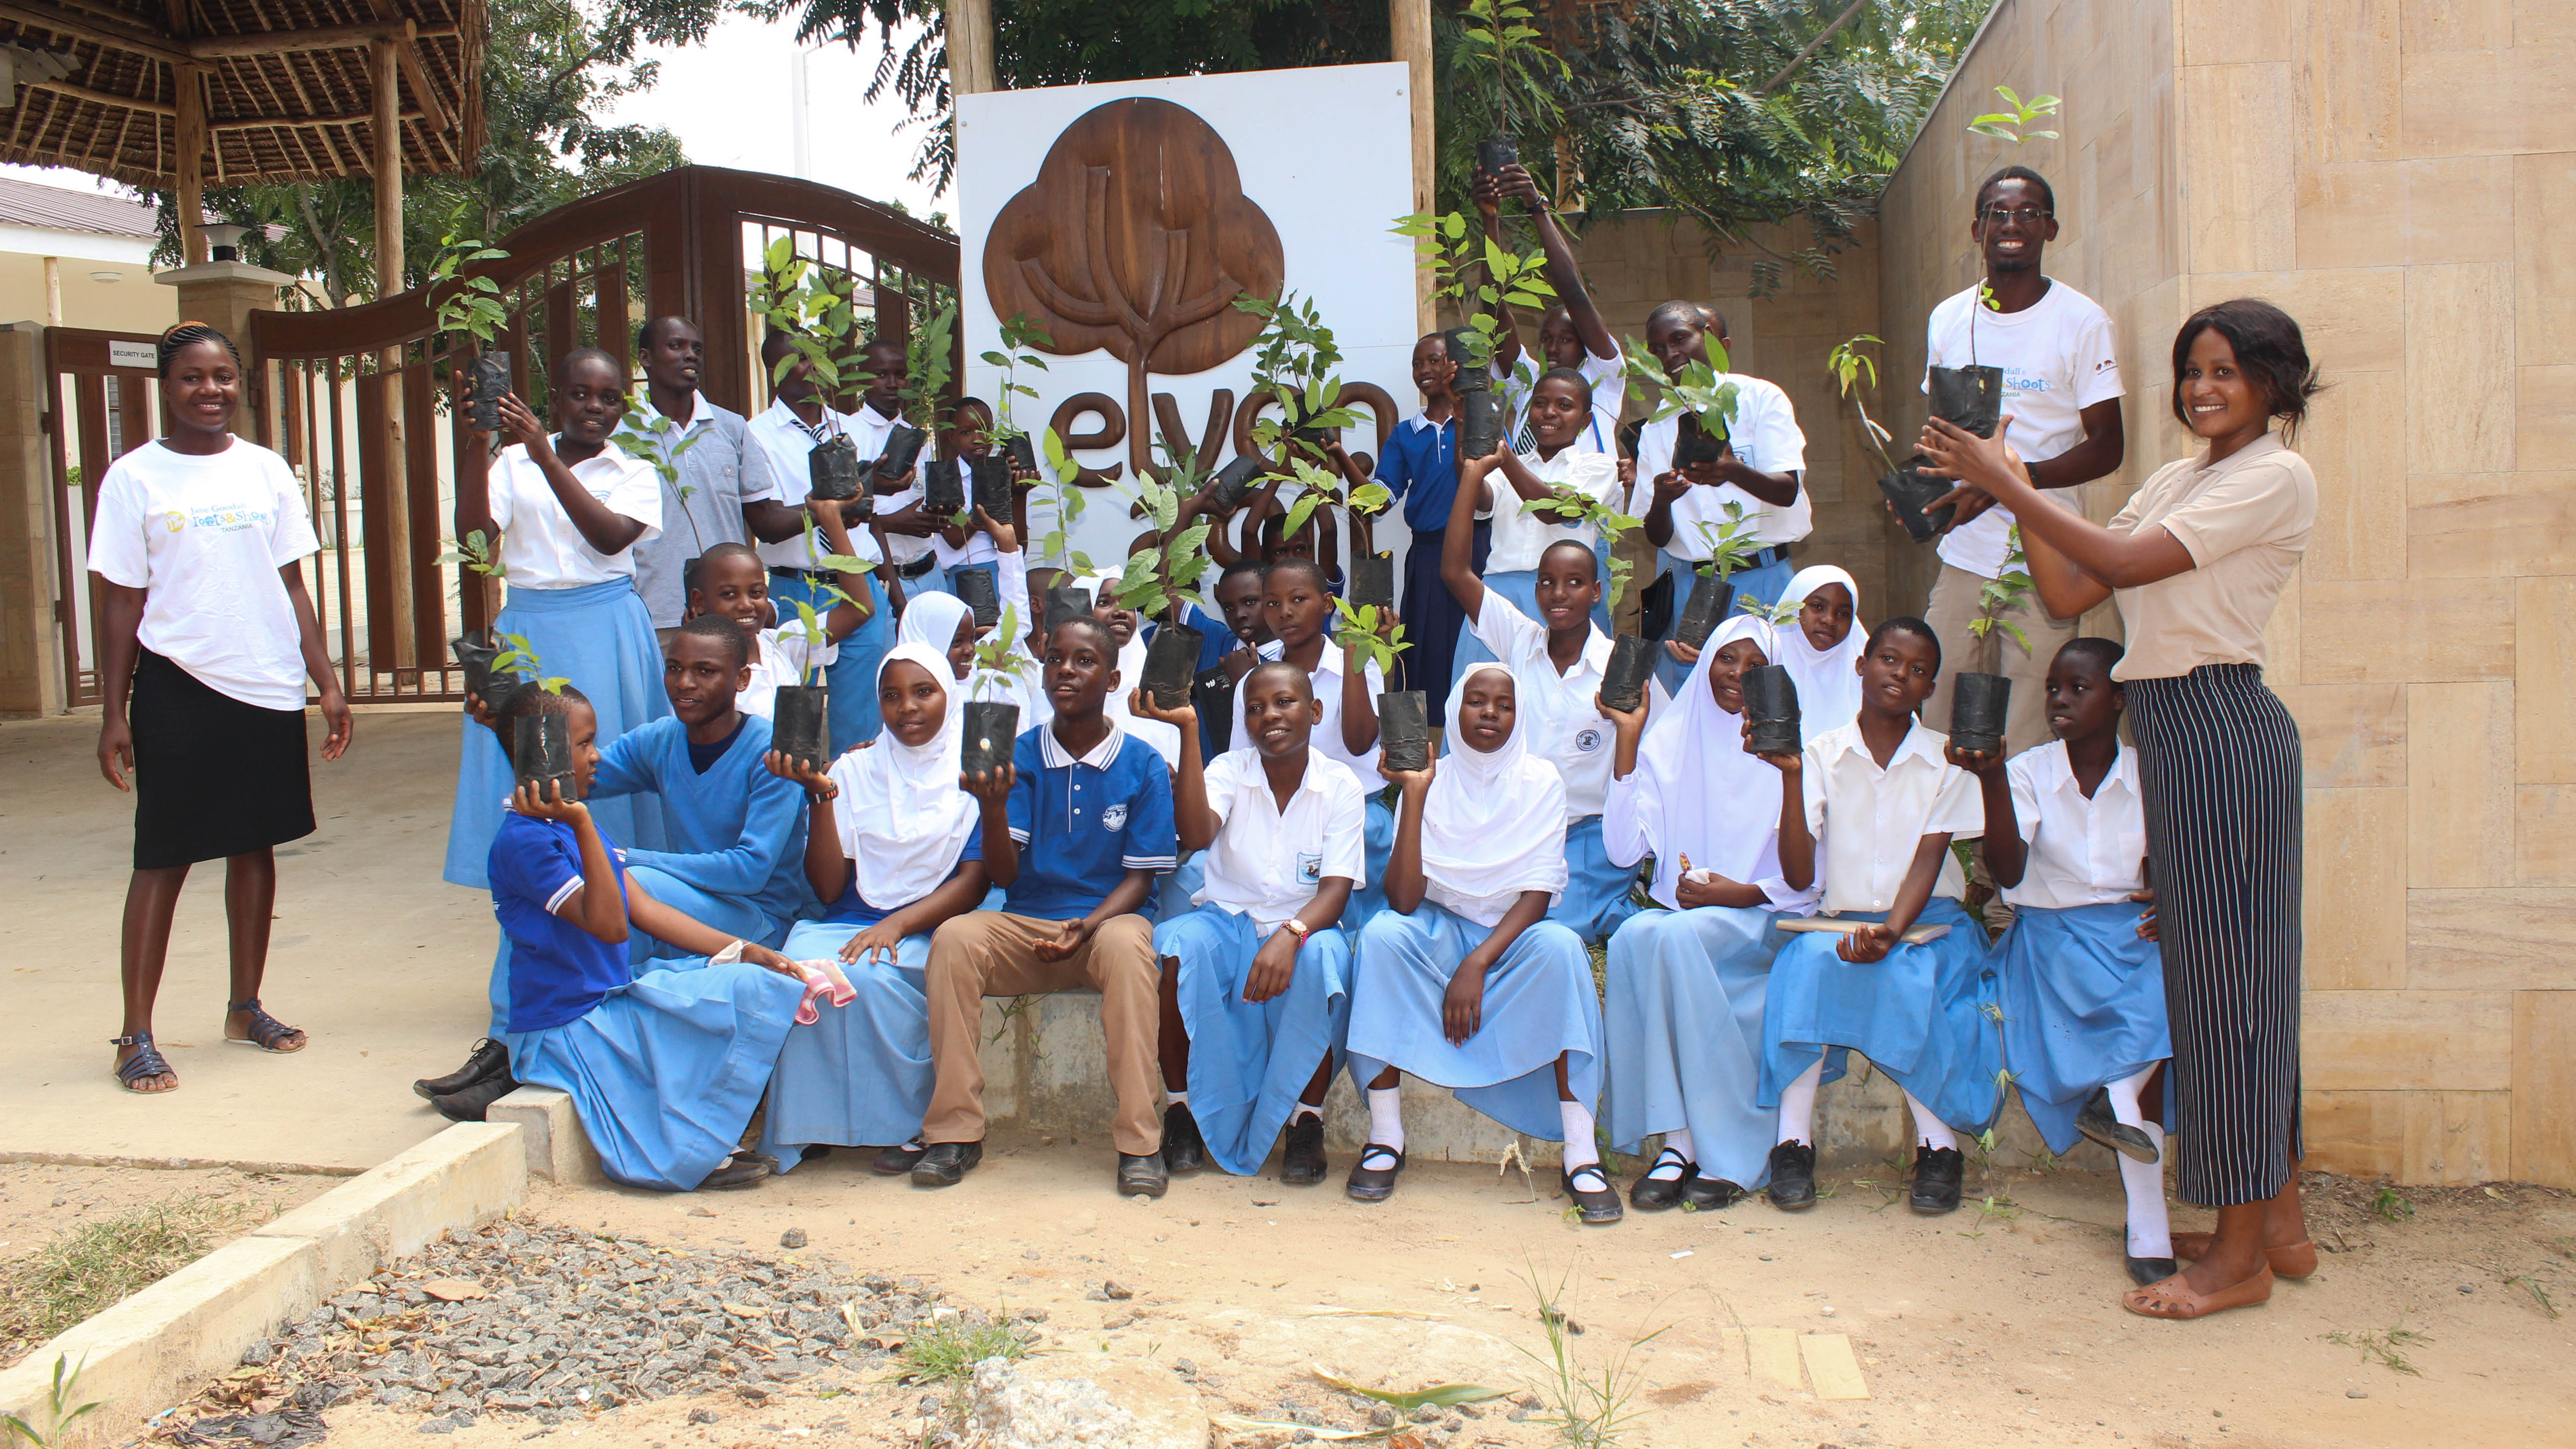 Insilling-the-love-for-environment-in-children